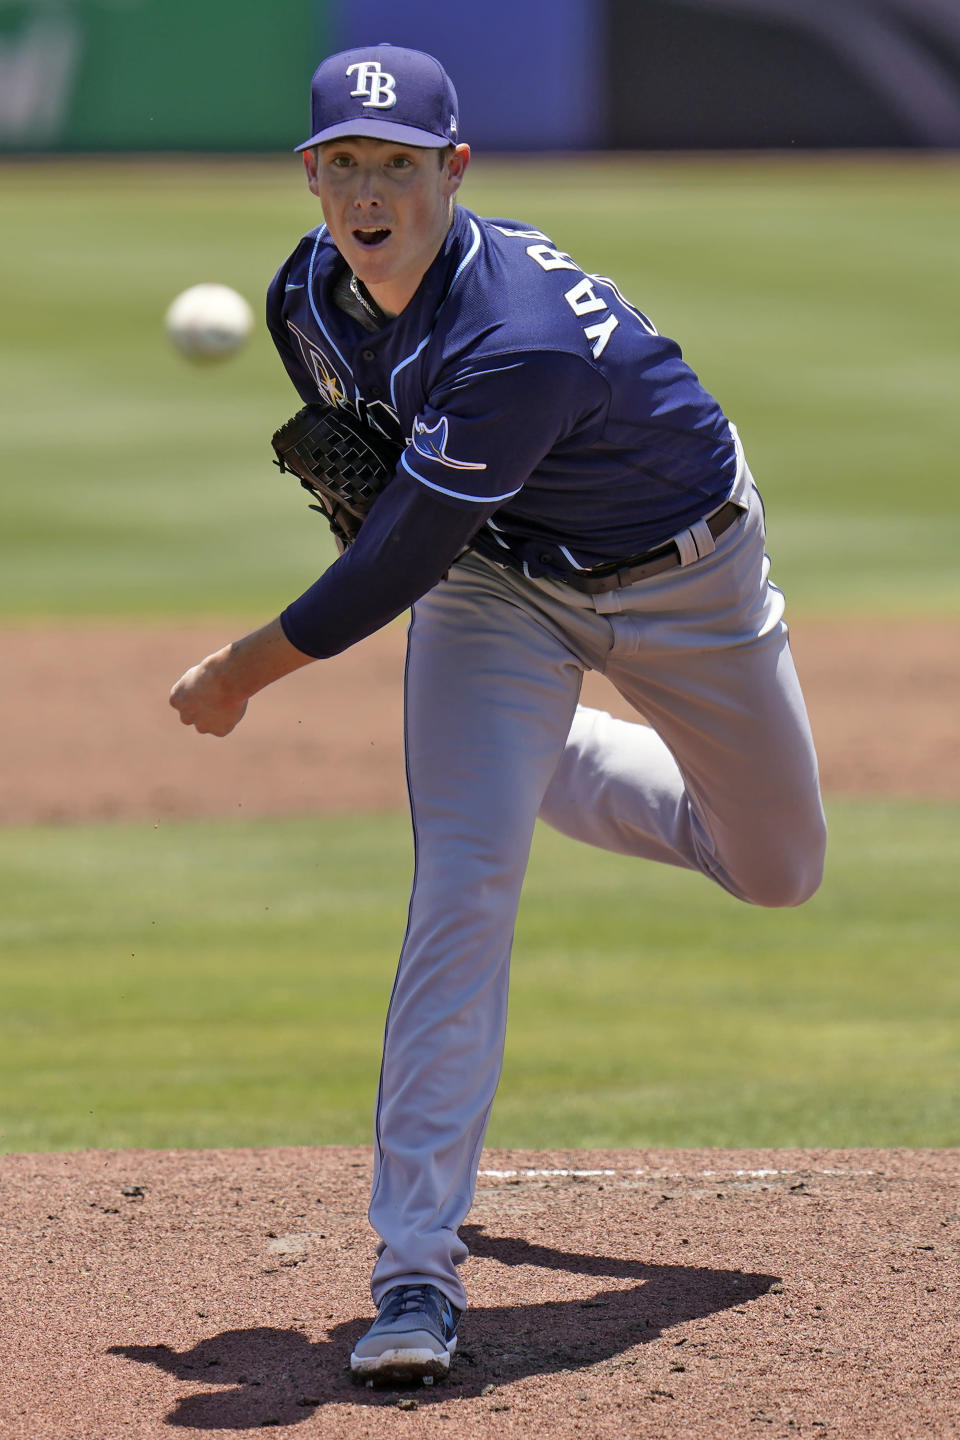 Tampa Bay Rays' Ryan Yarbrough pitches to the Toronto Blue Jays during the first inning of a baseball game Monday, May 24, 2021, in Dunedin, Fla. (AP Photo/Chris O'Meara)